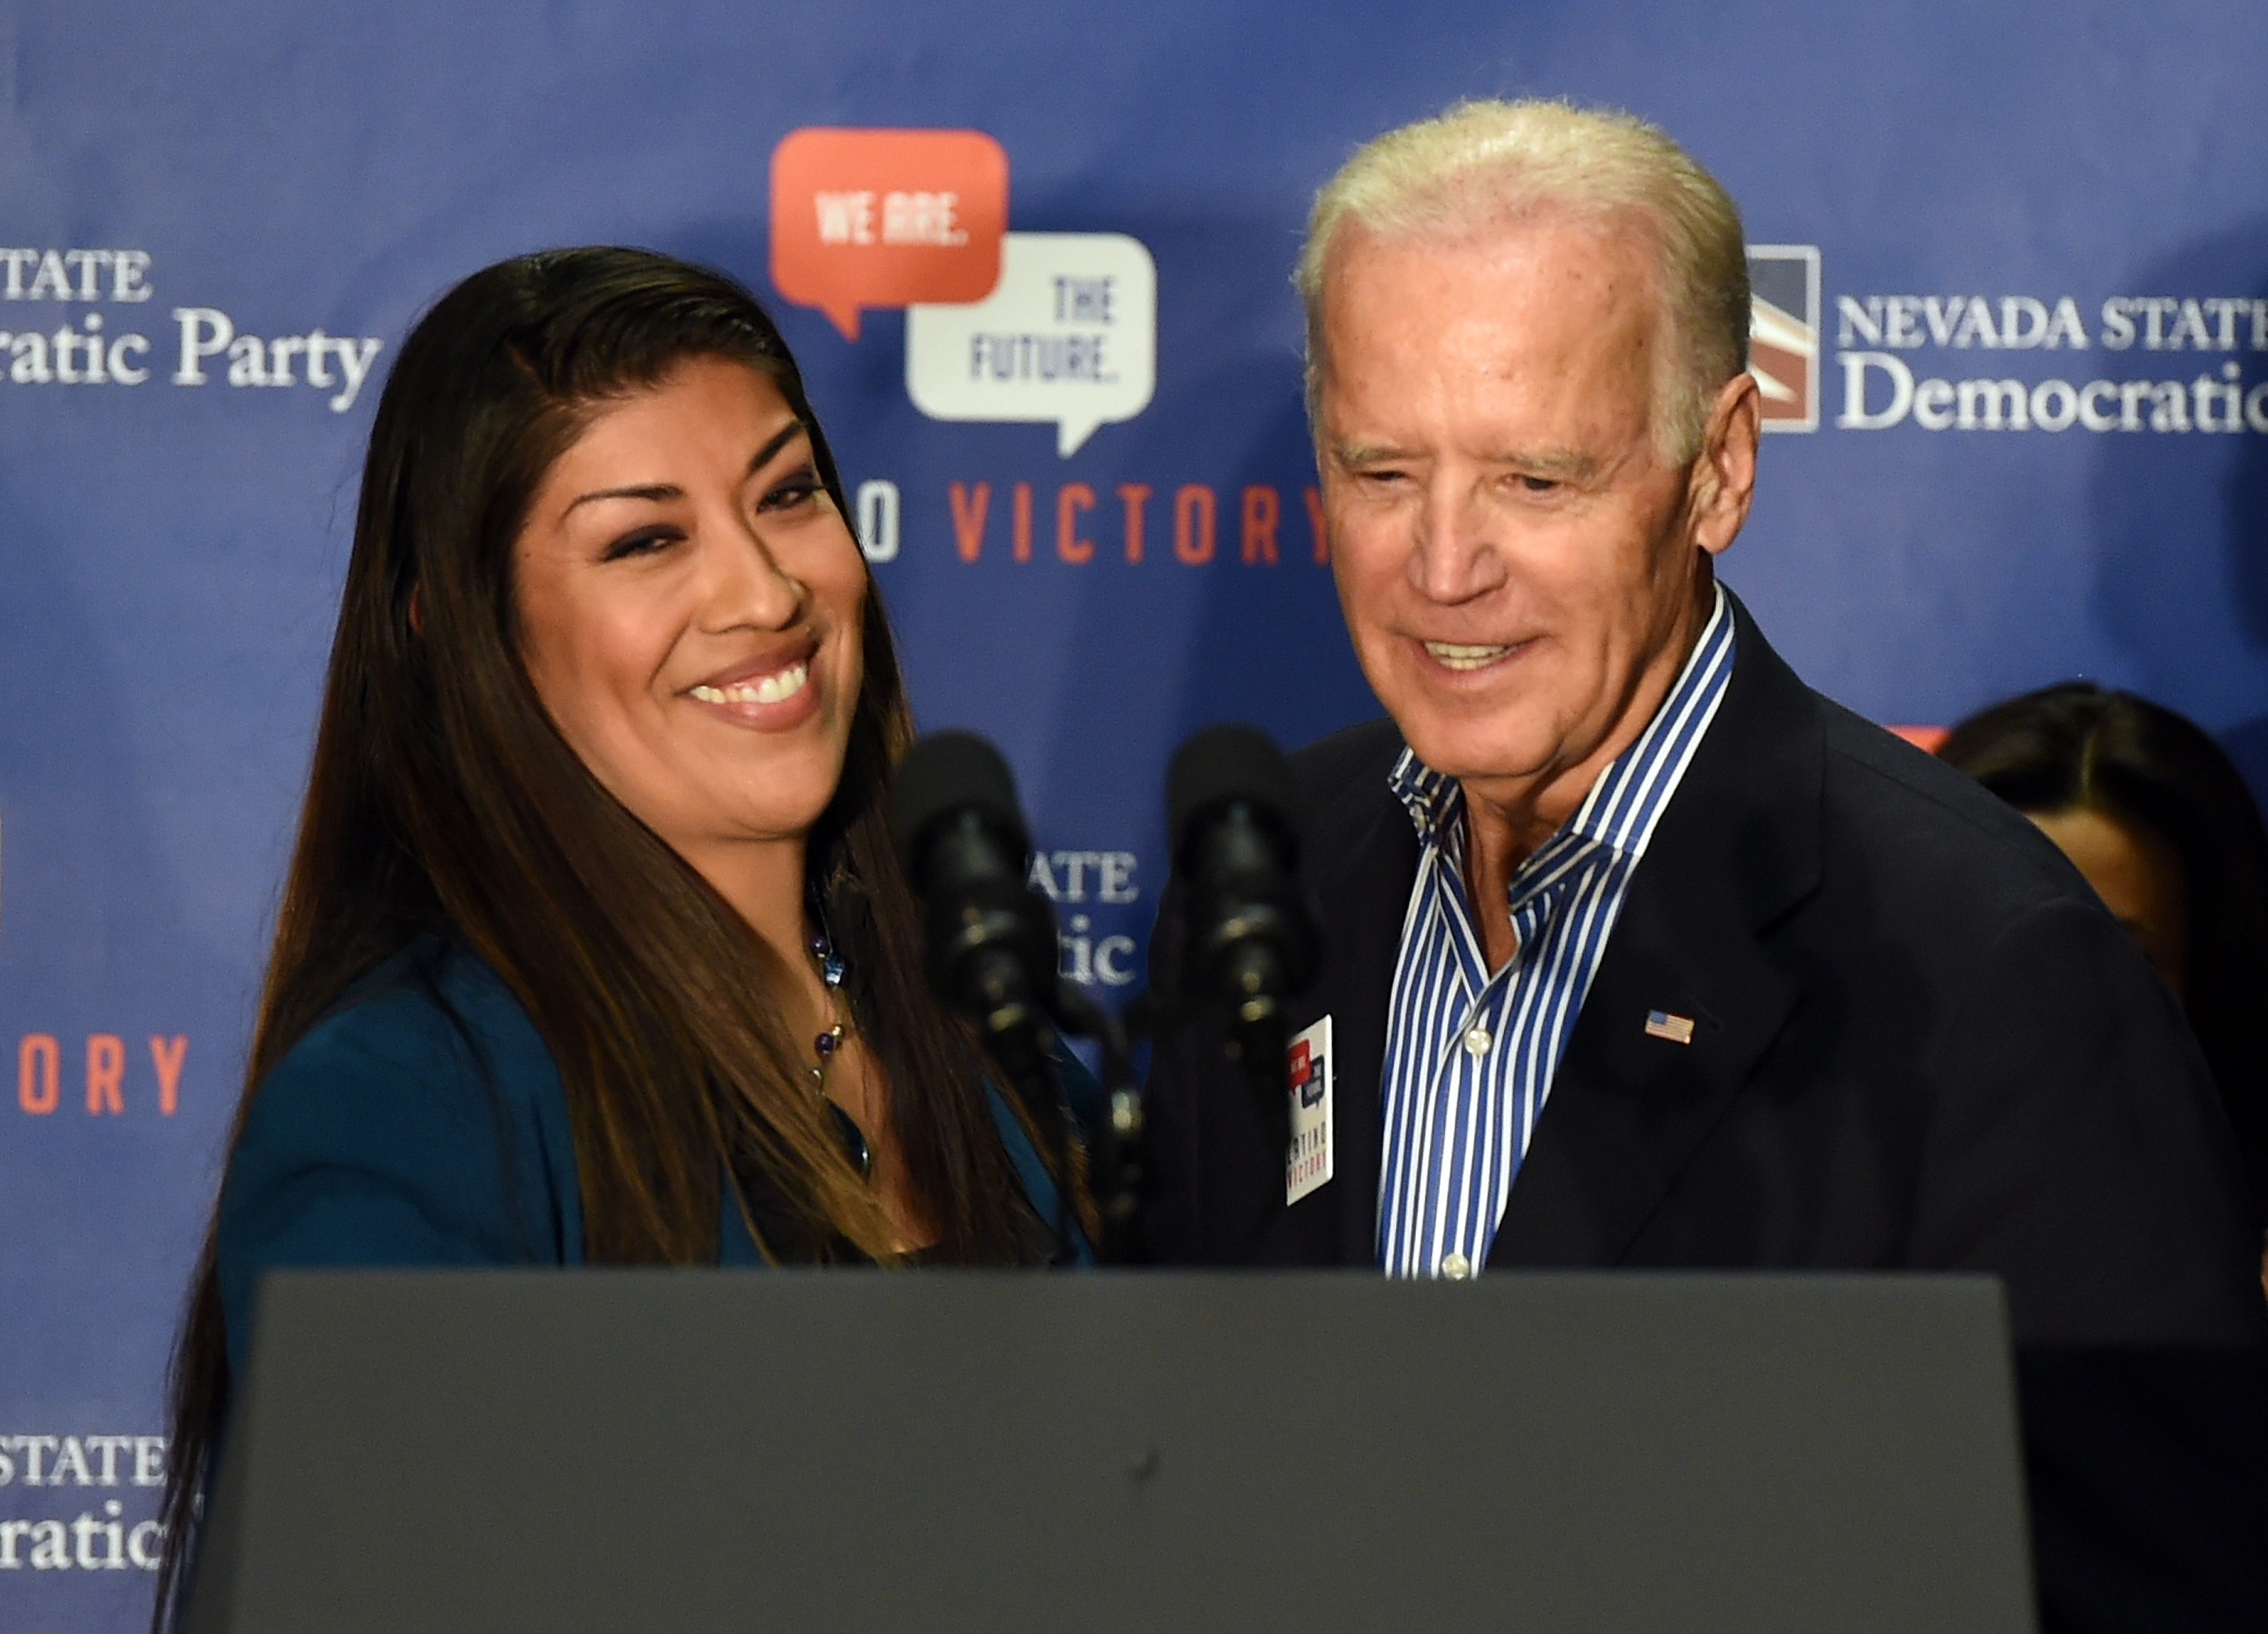 Democratic candidate for lieutenant governor and current Nevada Assemblywoman Lucy Flores (D-Las Vegas) (L) introduces U.S. Vice President Joe Biden at a get-out-the-vote rally at a union hall on November 1, 2014 in Las Vegas, Nevada. (Getty Images)